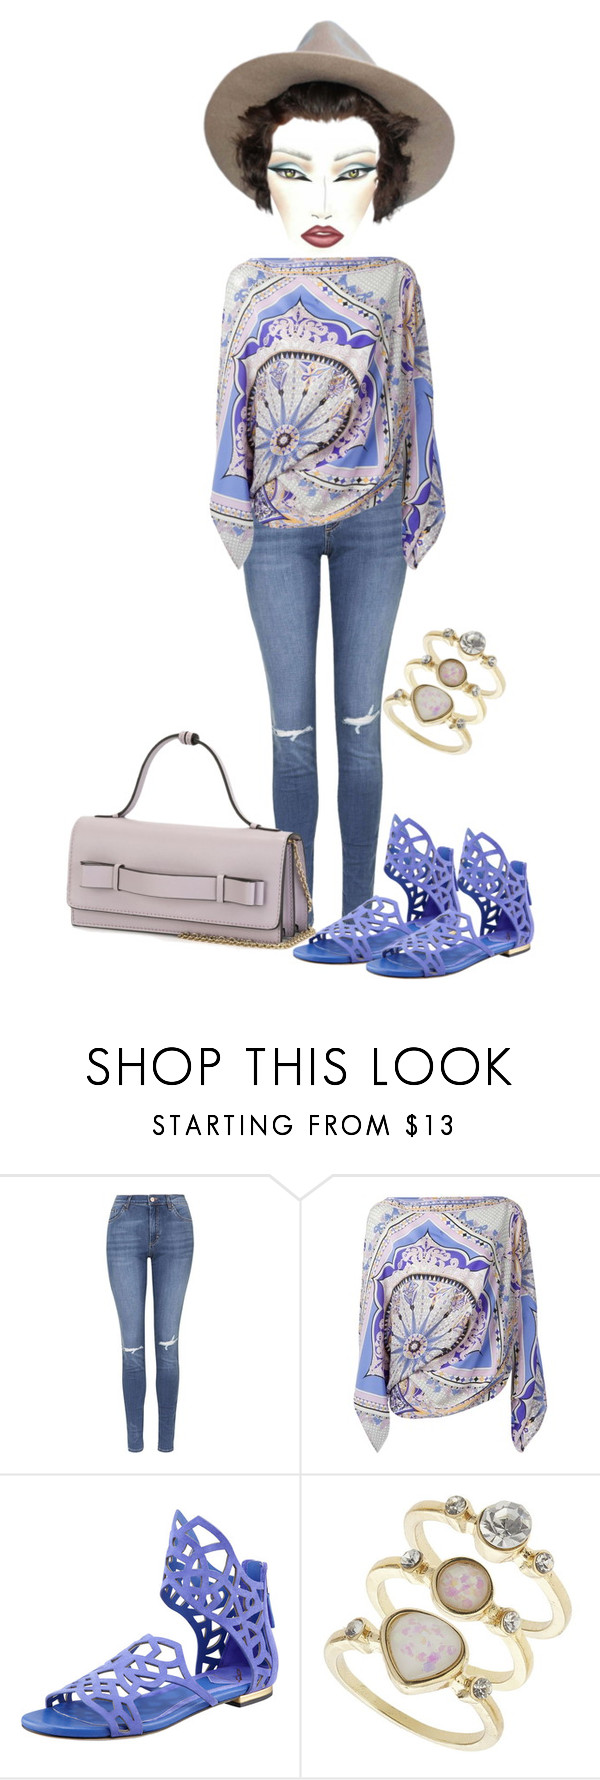 """""""Untitled #4433"""" by cristalabron ❤ liked on Polyvore featuring Topshop, Emilio Pucci, B Brian Atwood, Miss Selfridge and RED Valentino"""